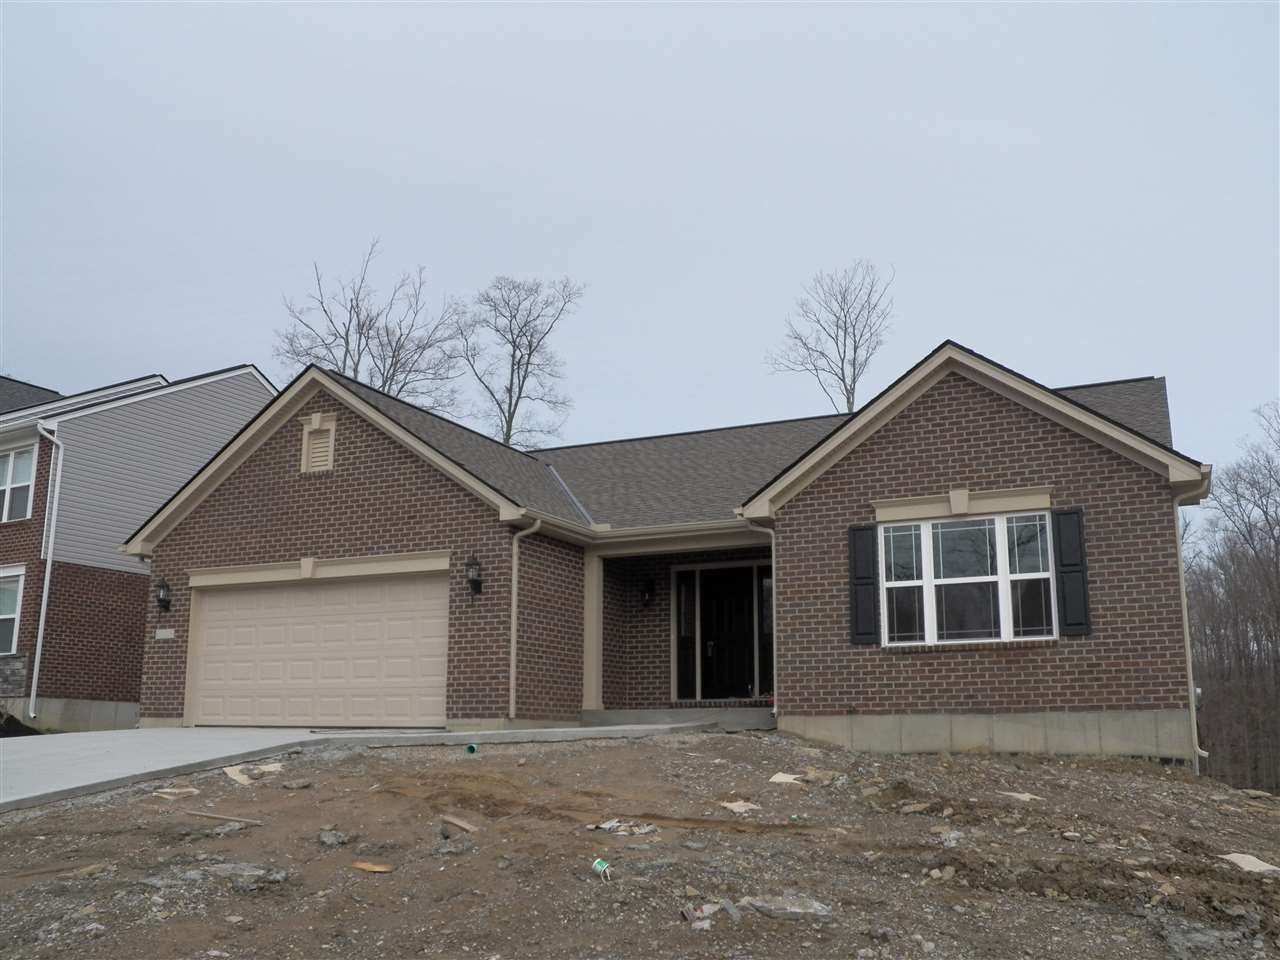 Photo 1 for 3112 Silverbell Way, 39AL Independence, KY 41051